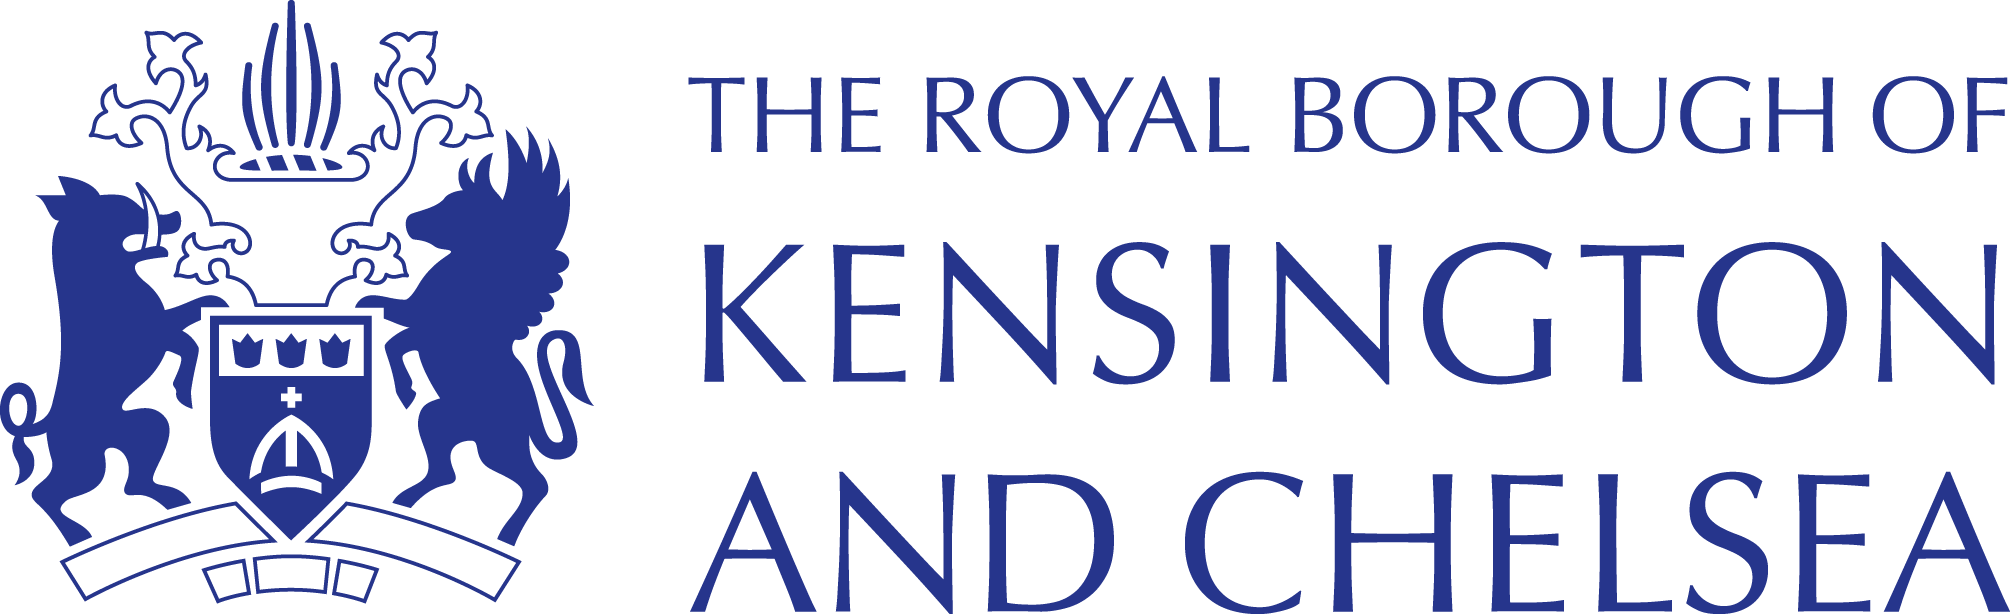 Supported by the Royal Borough of Kensington and Chelsea